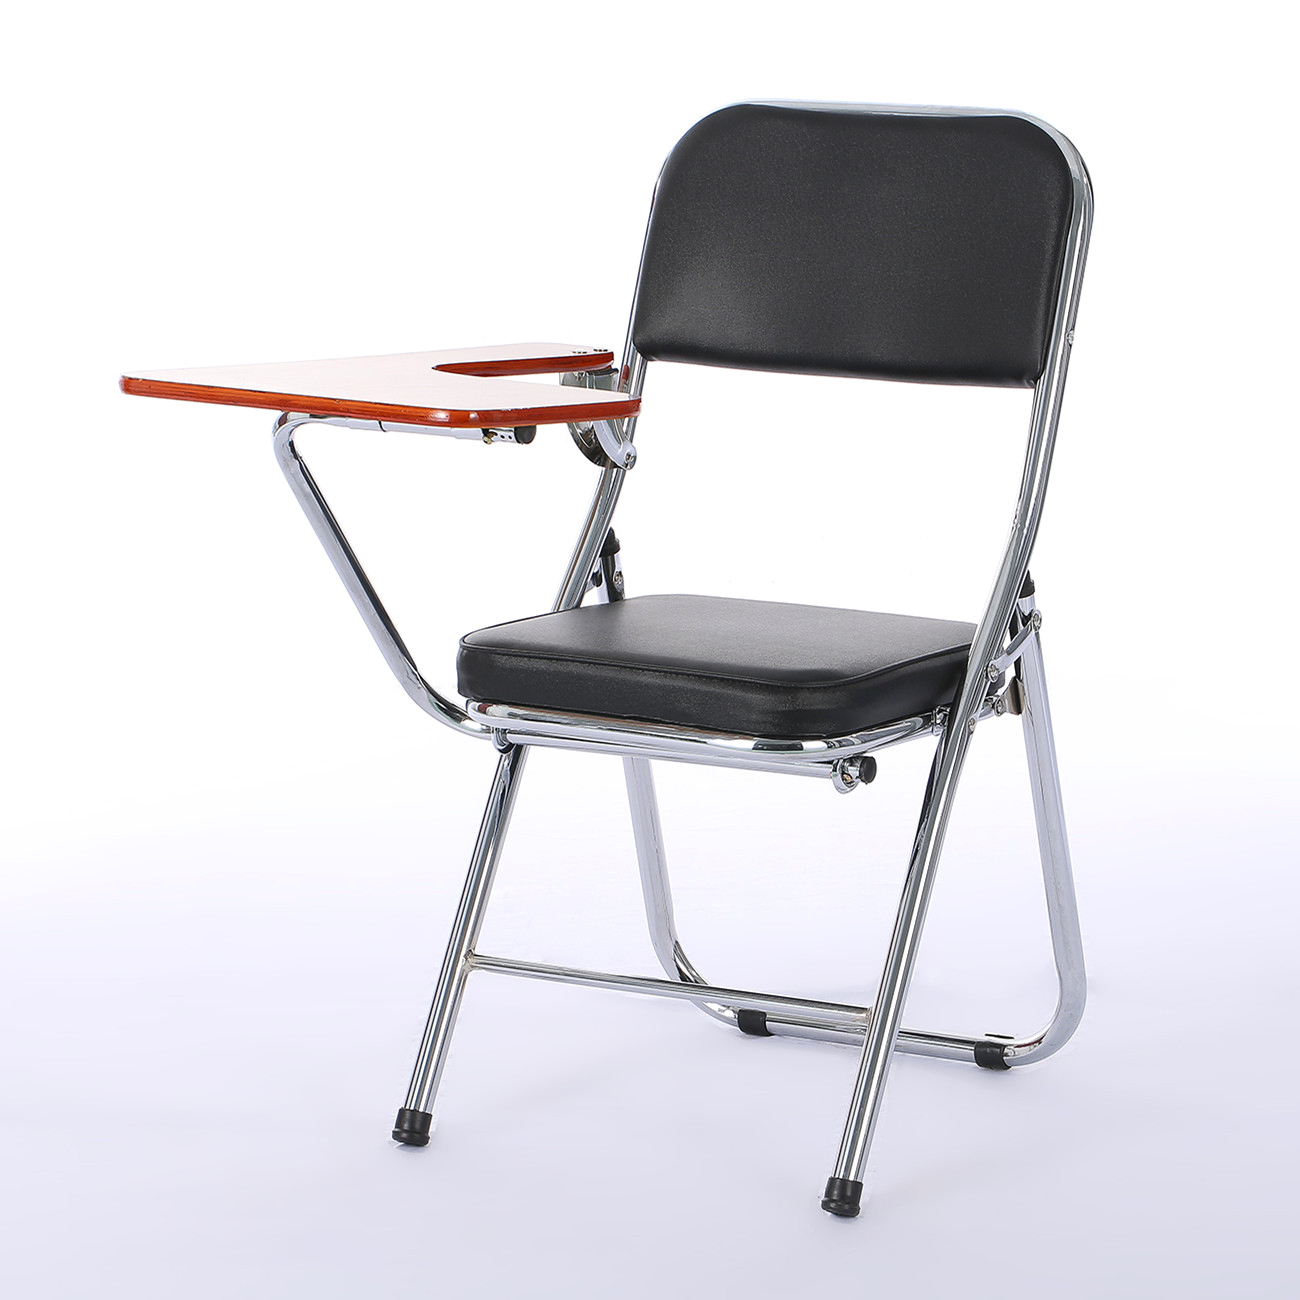 popular portable office chairs-buy cheap portable office chairs